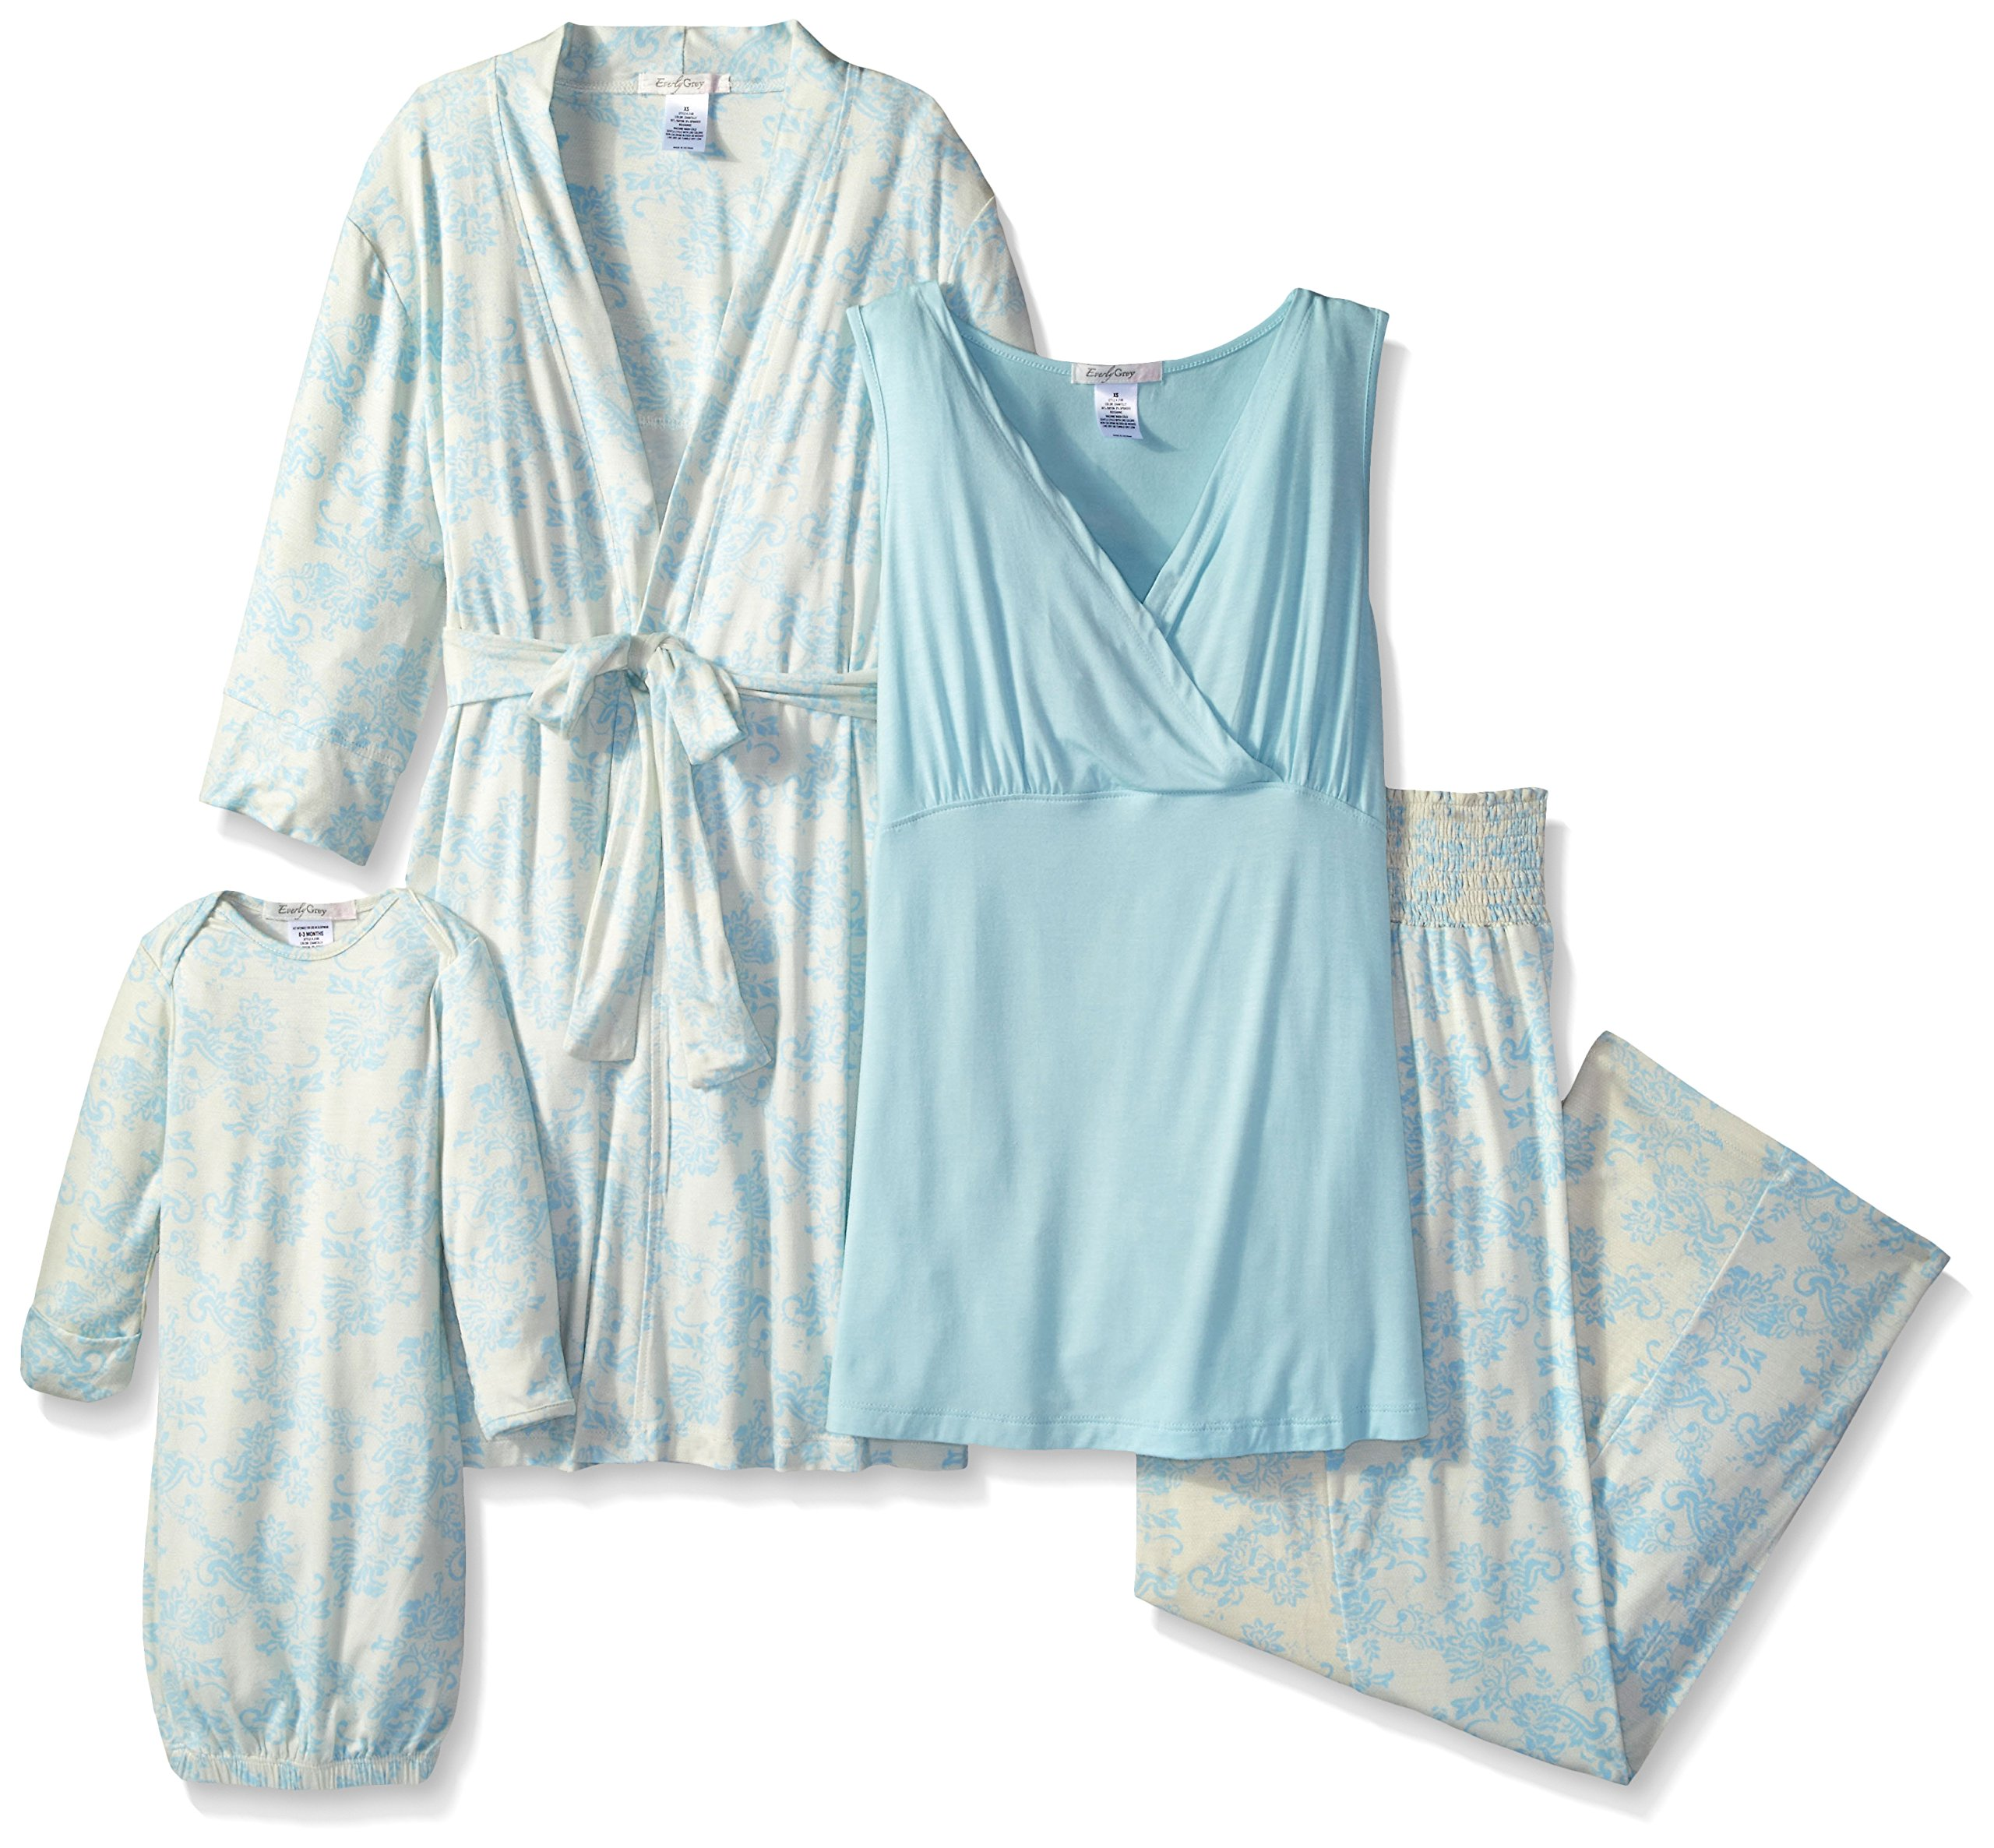 Everly Grey Women's Roxanne 5 Piece Maternity and Nursing PJ Pant Set with Robe and Matching Baby Gown, Chantilly, Small